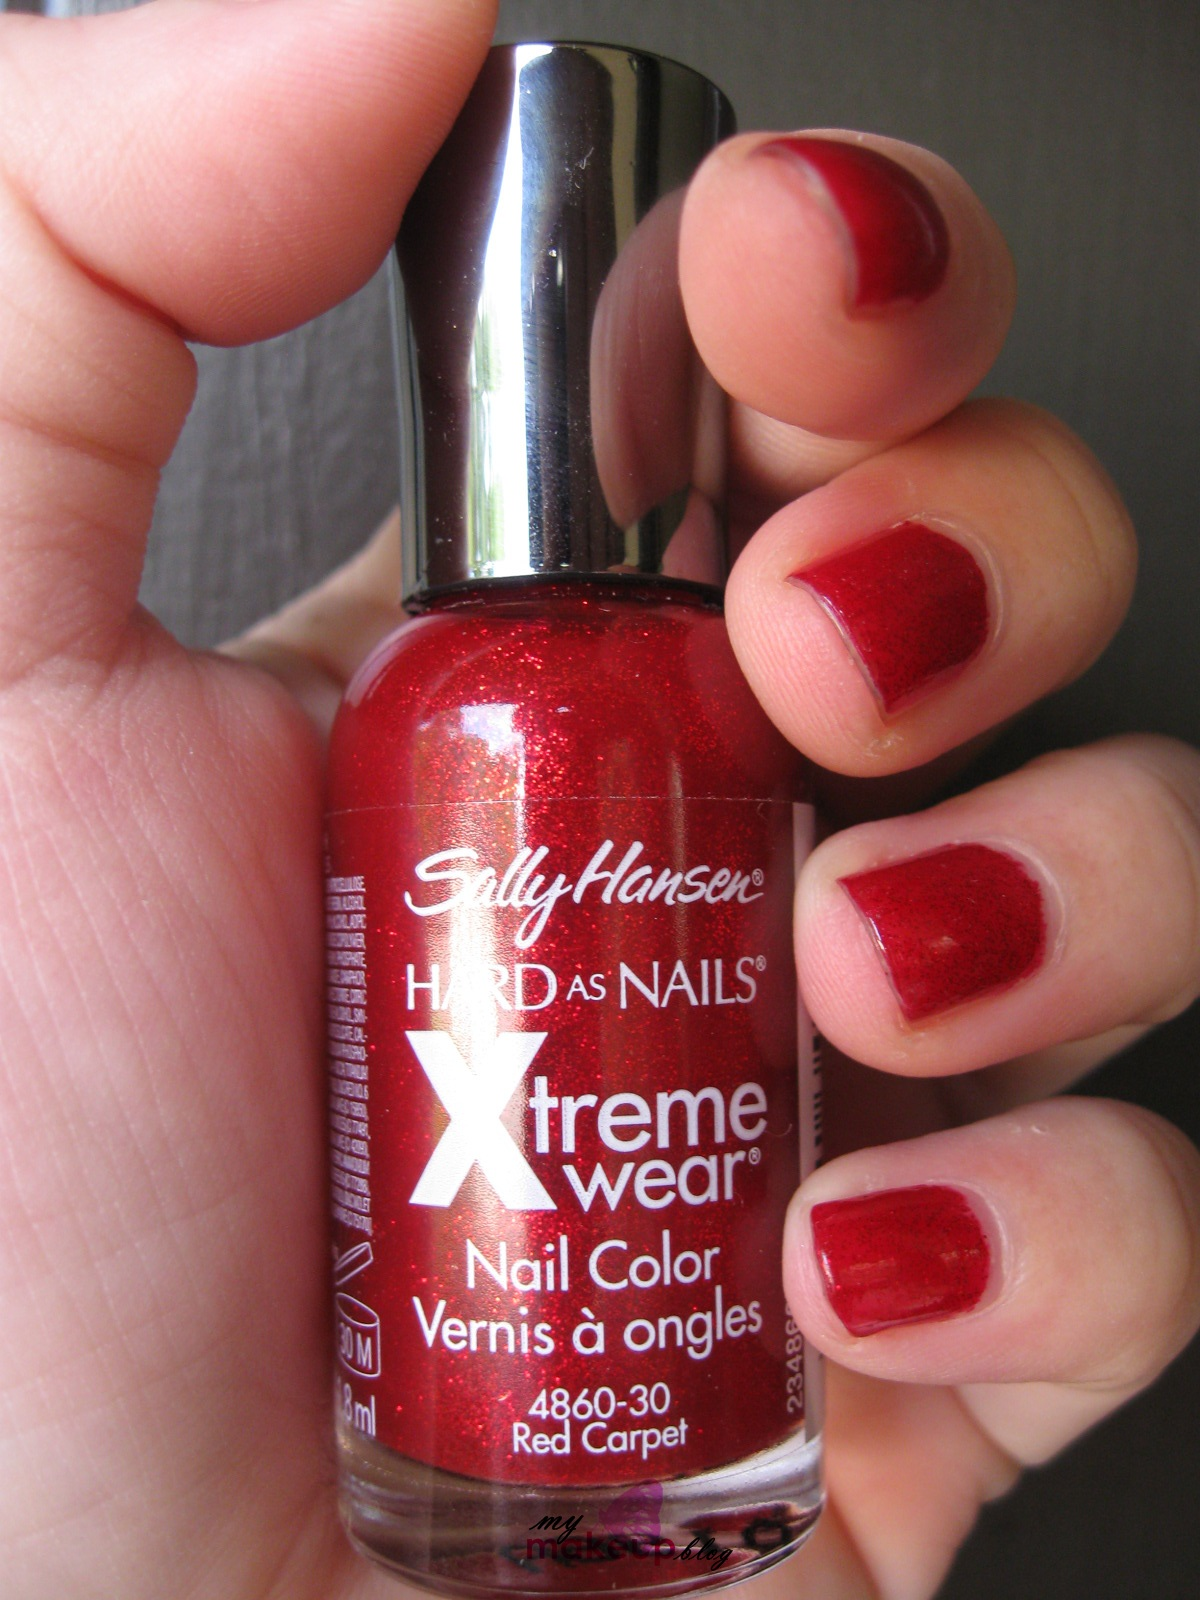 How to xtreme remove wear nail polish images